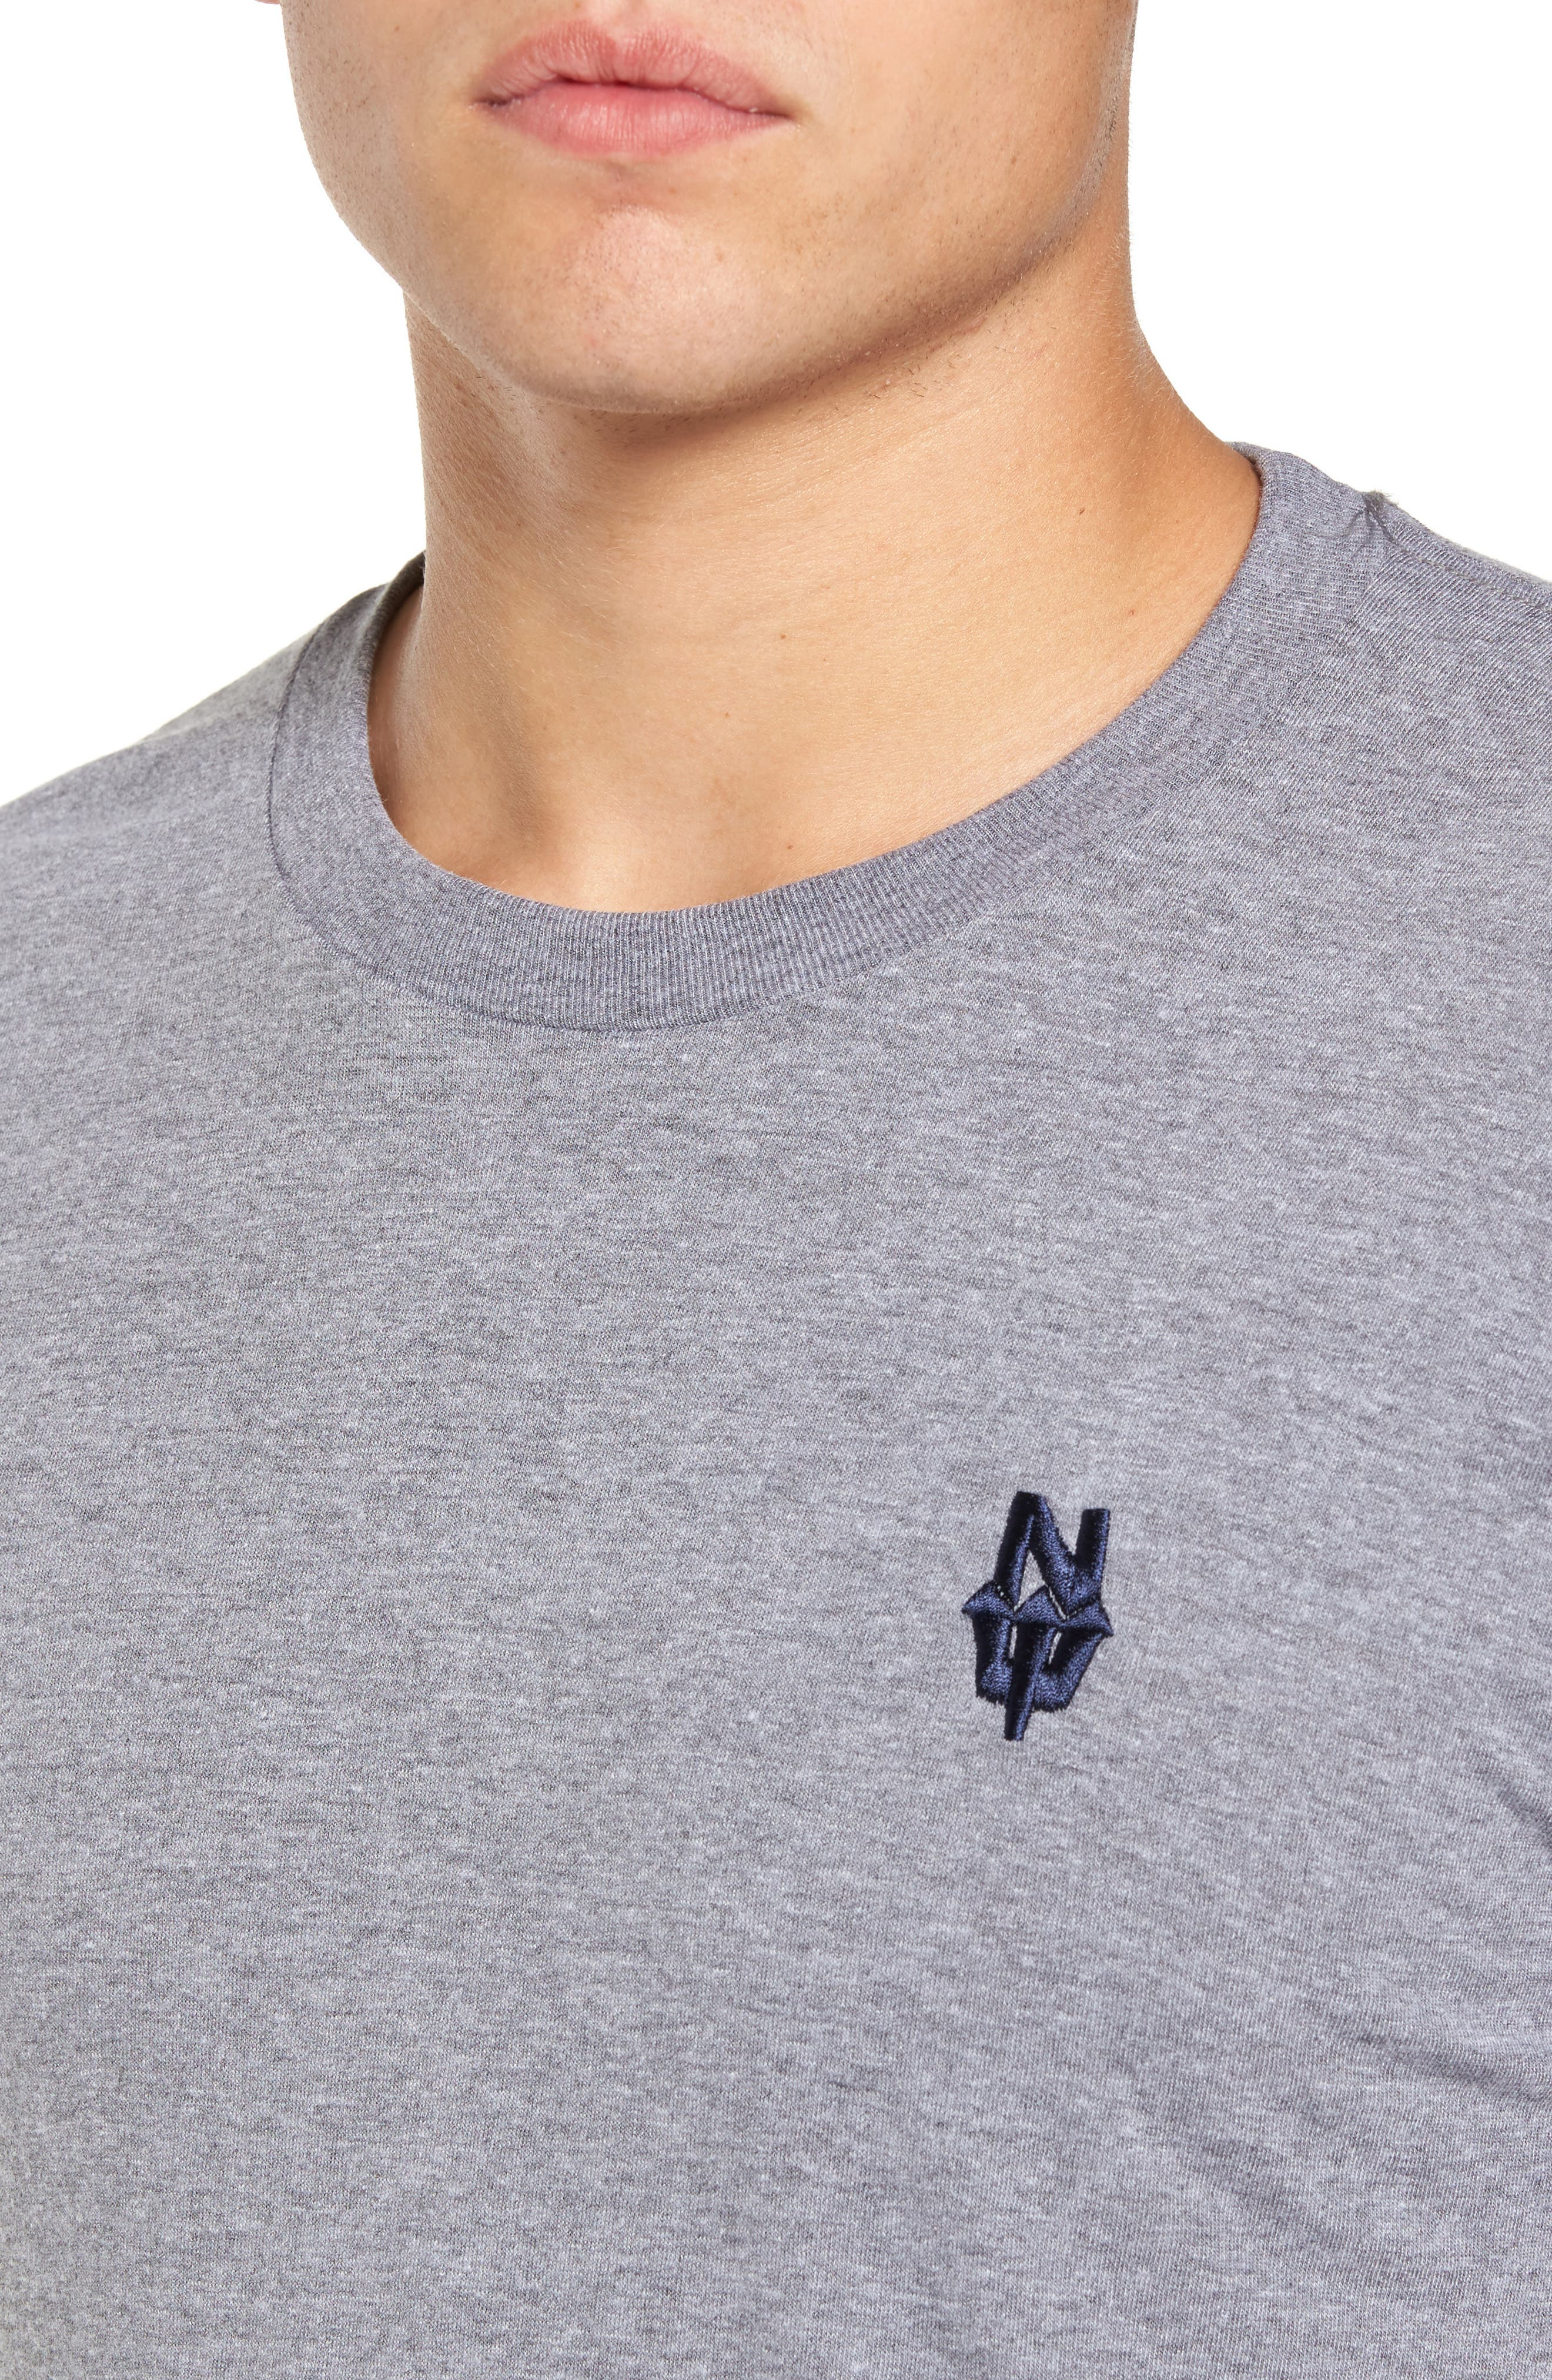 NW Trident Embroidered T-Shirt,                             Alternate thumbnail 11, color,